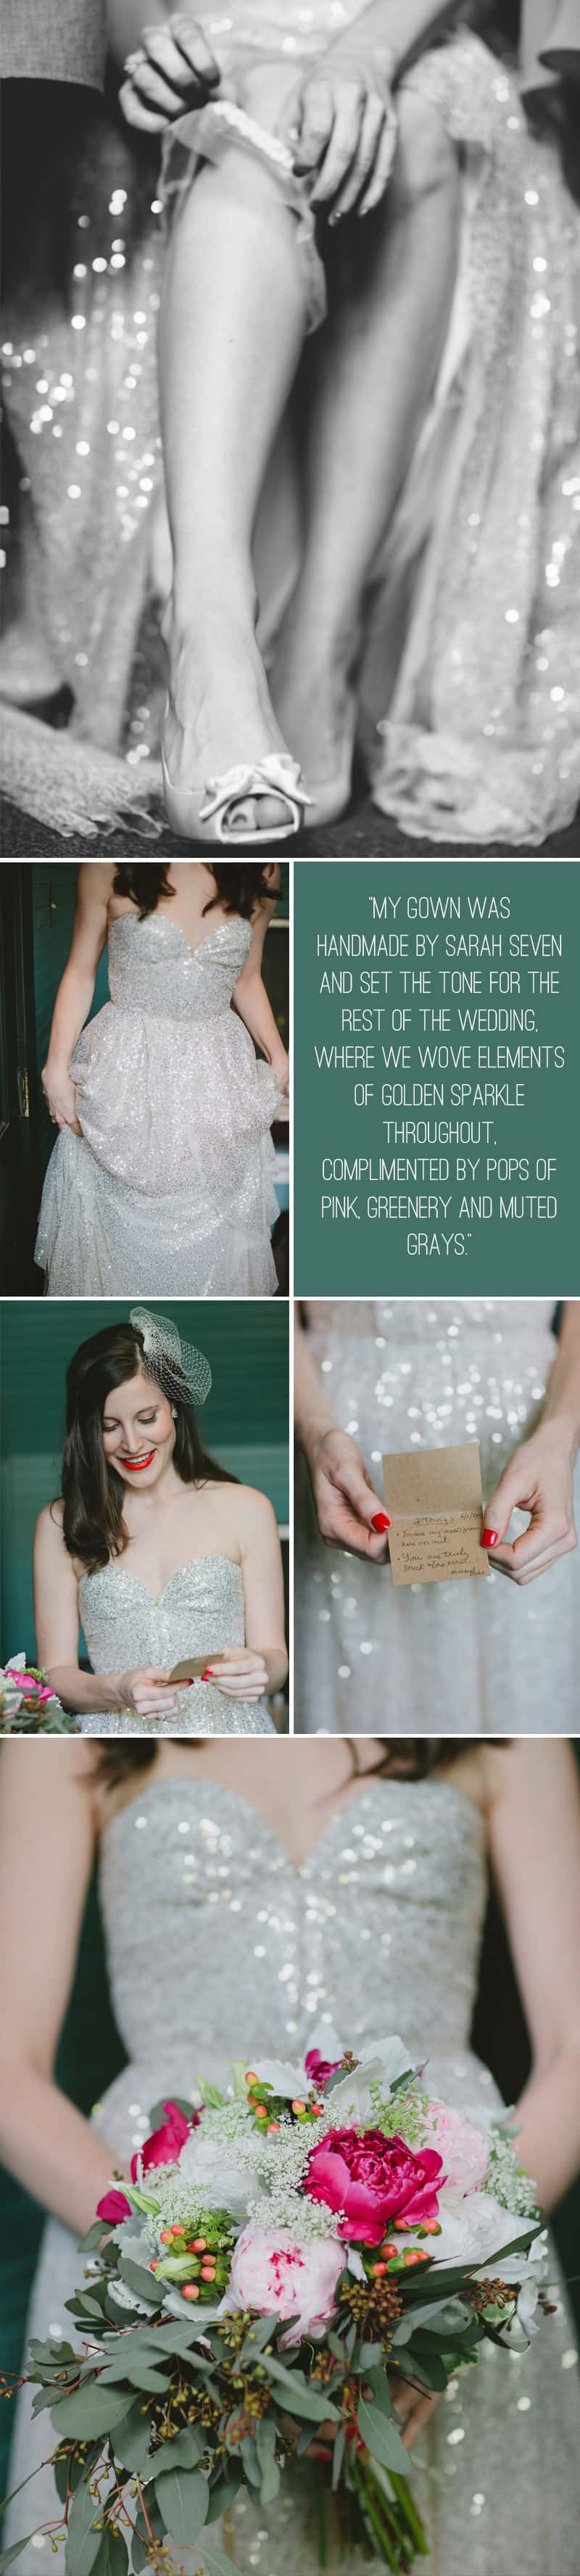 Etsy Hollywood Glamour Wedding 3T